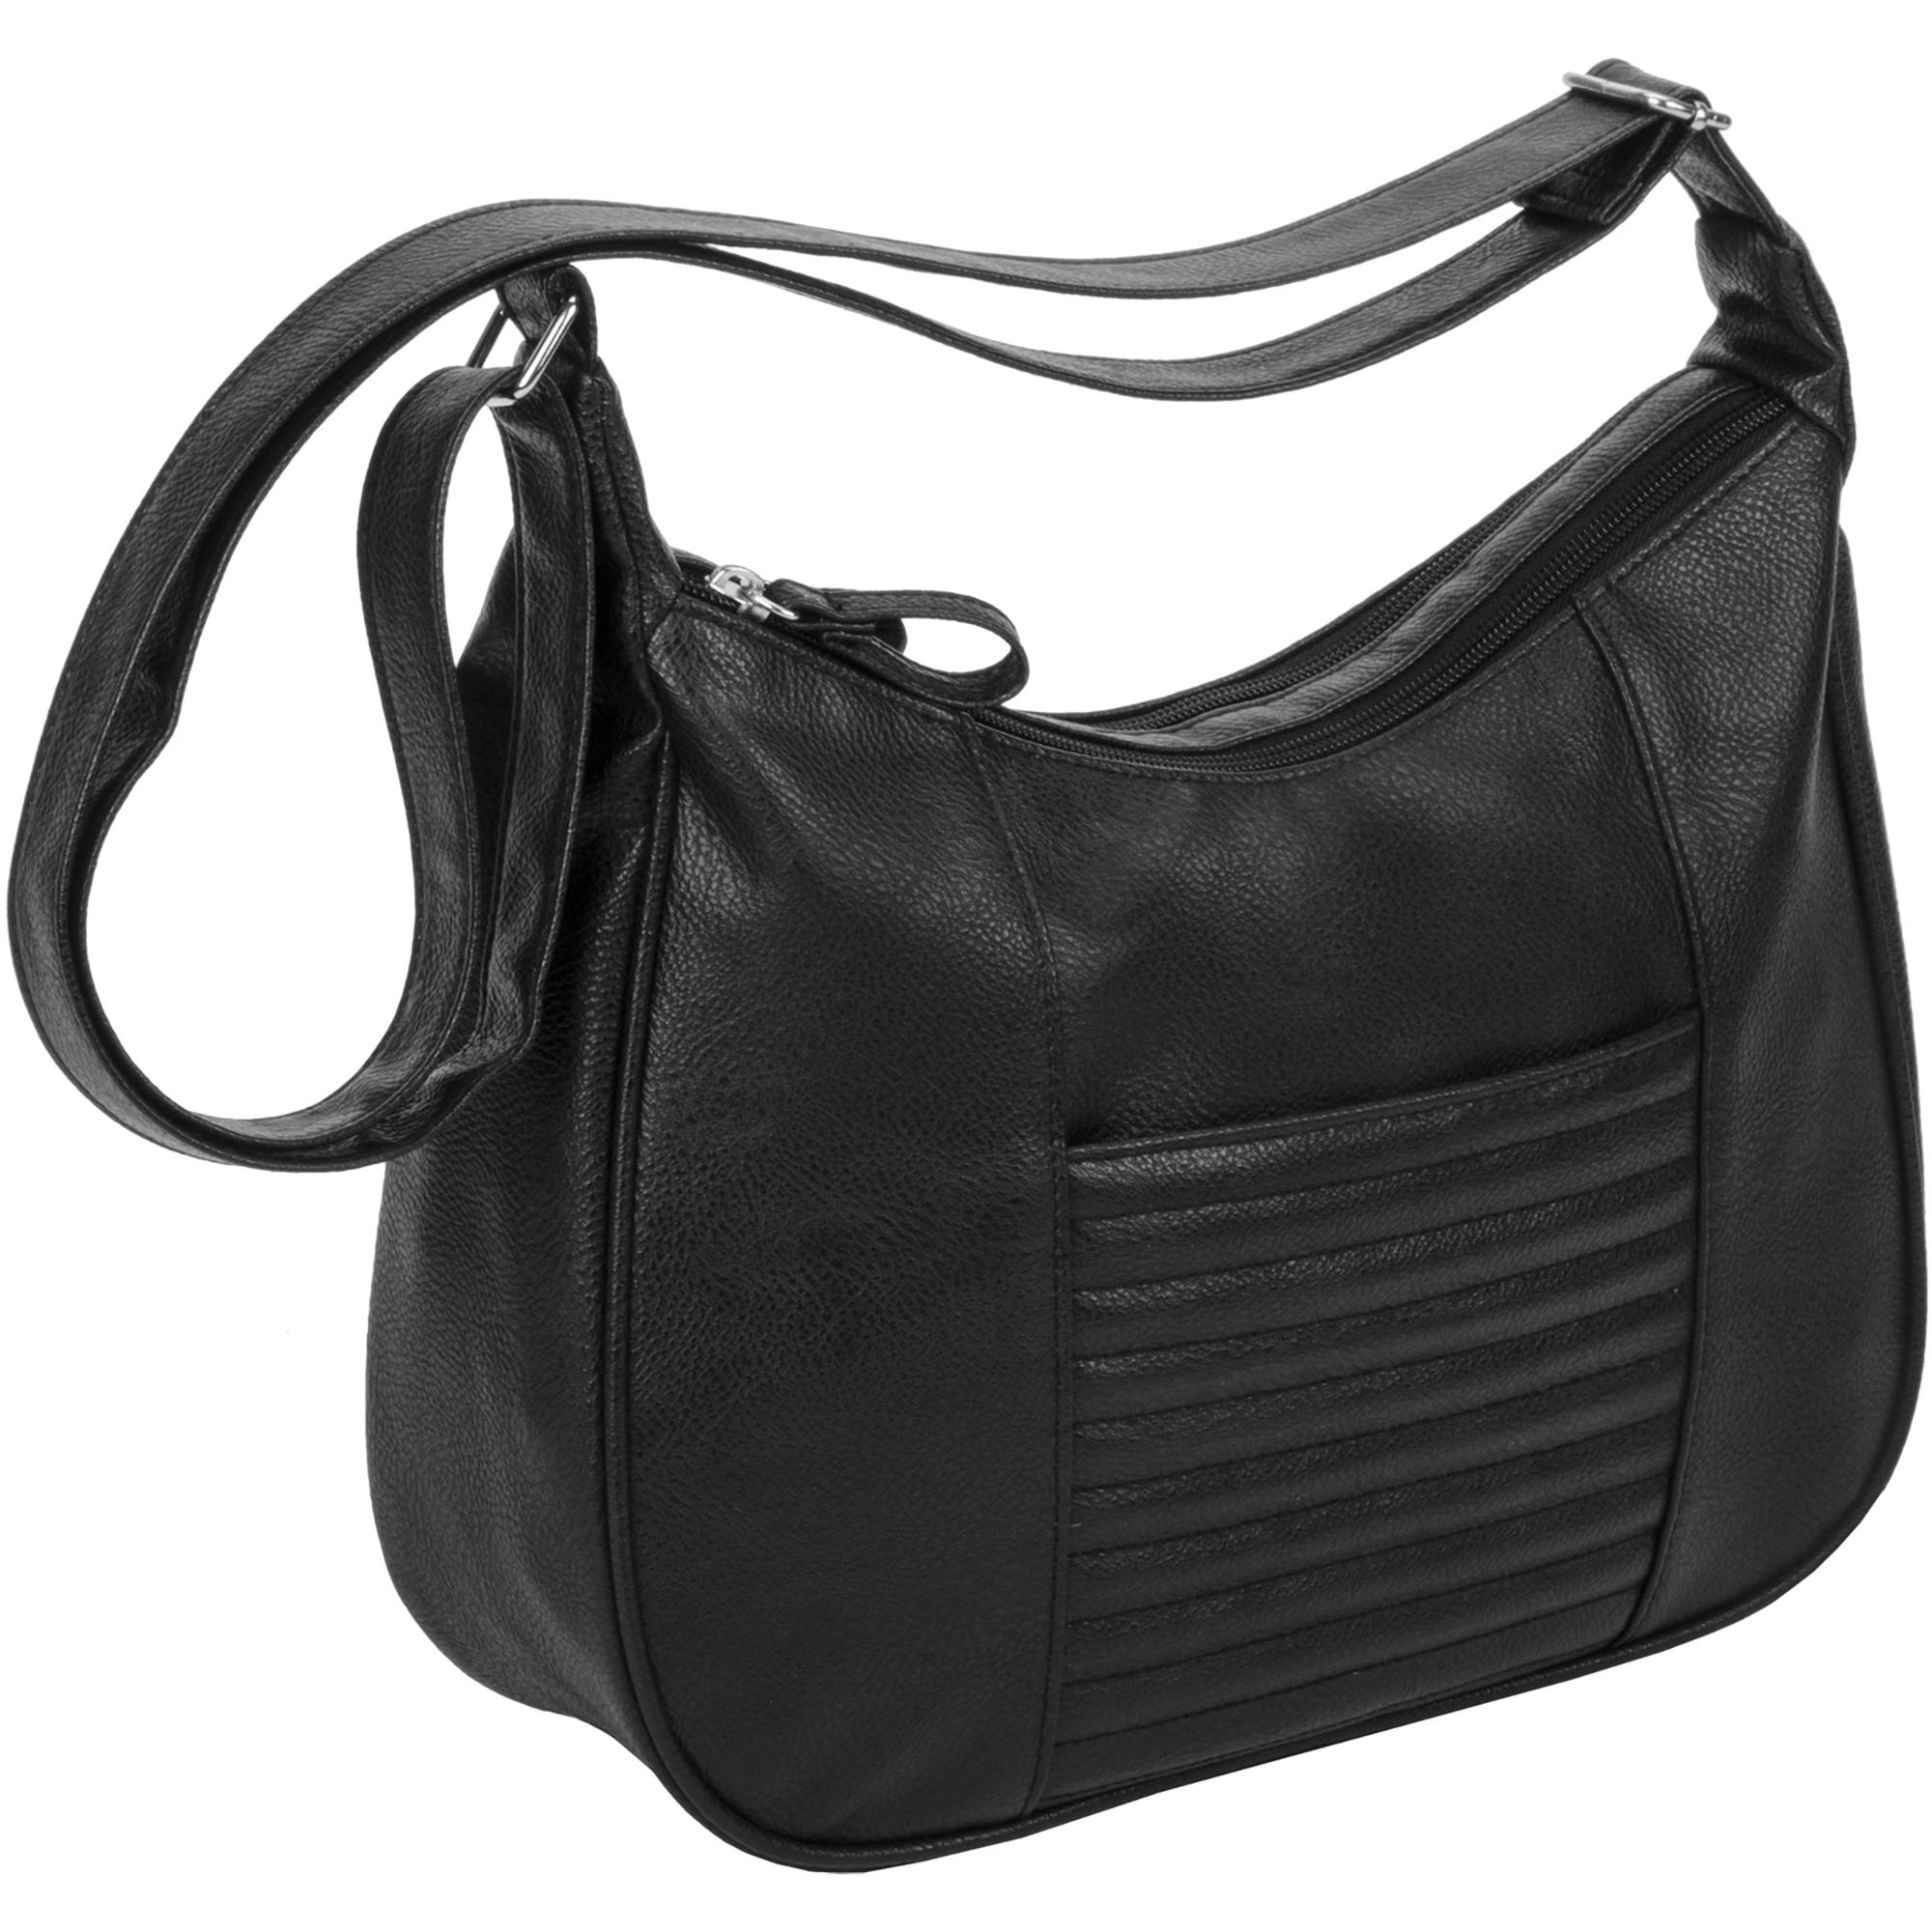 Women's Quilted Crossbody Hobo Handbag with Adjustable Strap